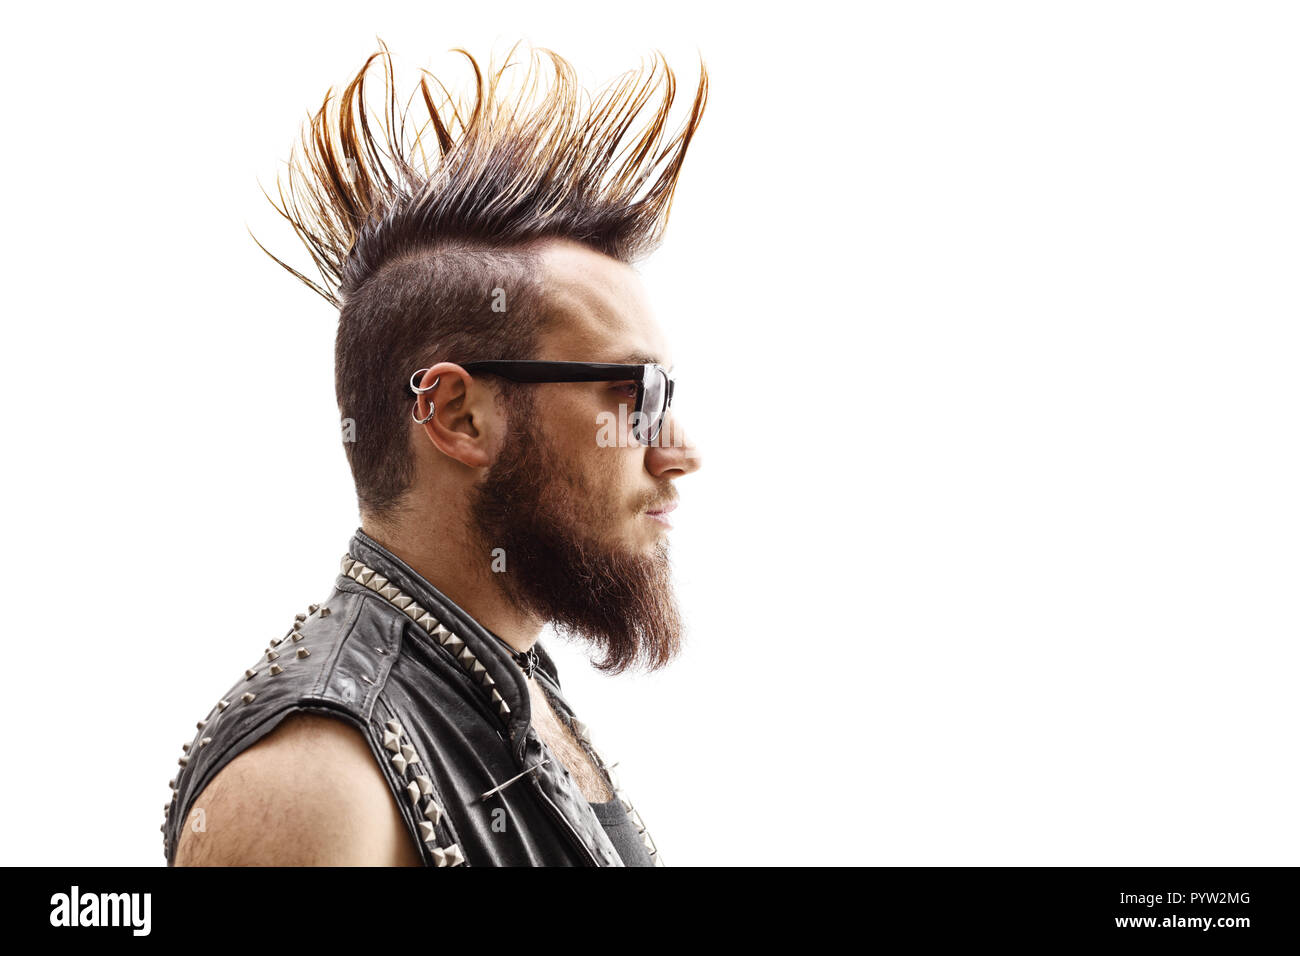 Profile Face Shot Of A Male Punker With Mohawk Hairstyle Isolated On